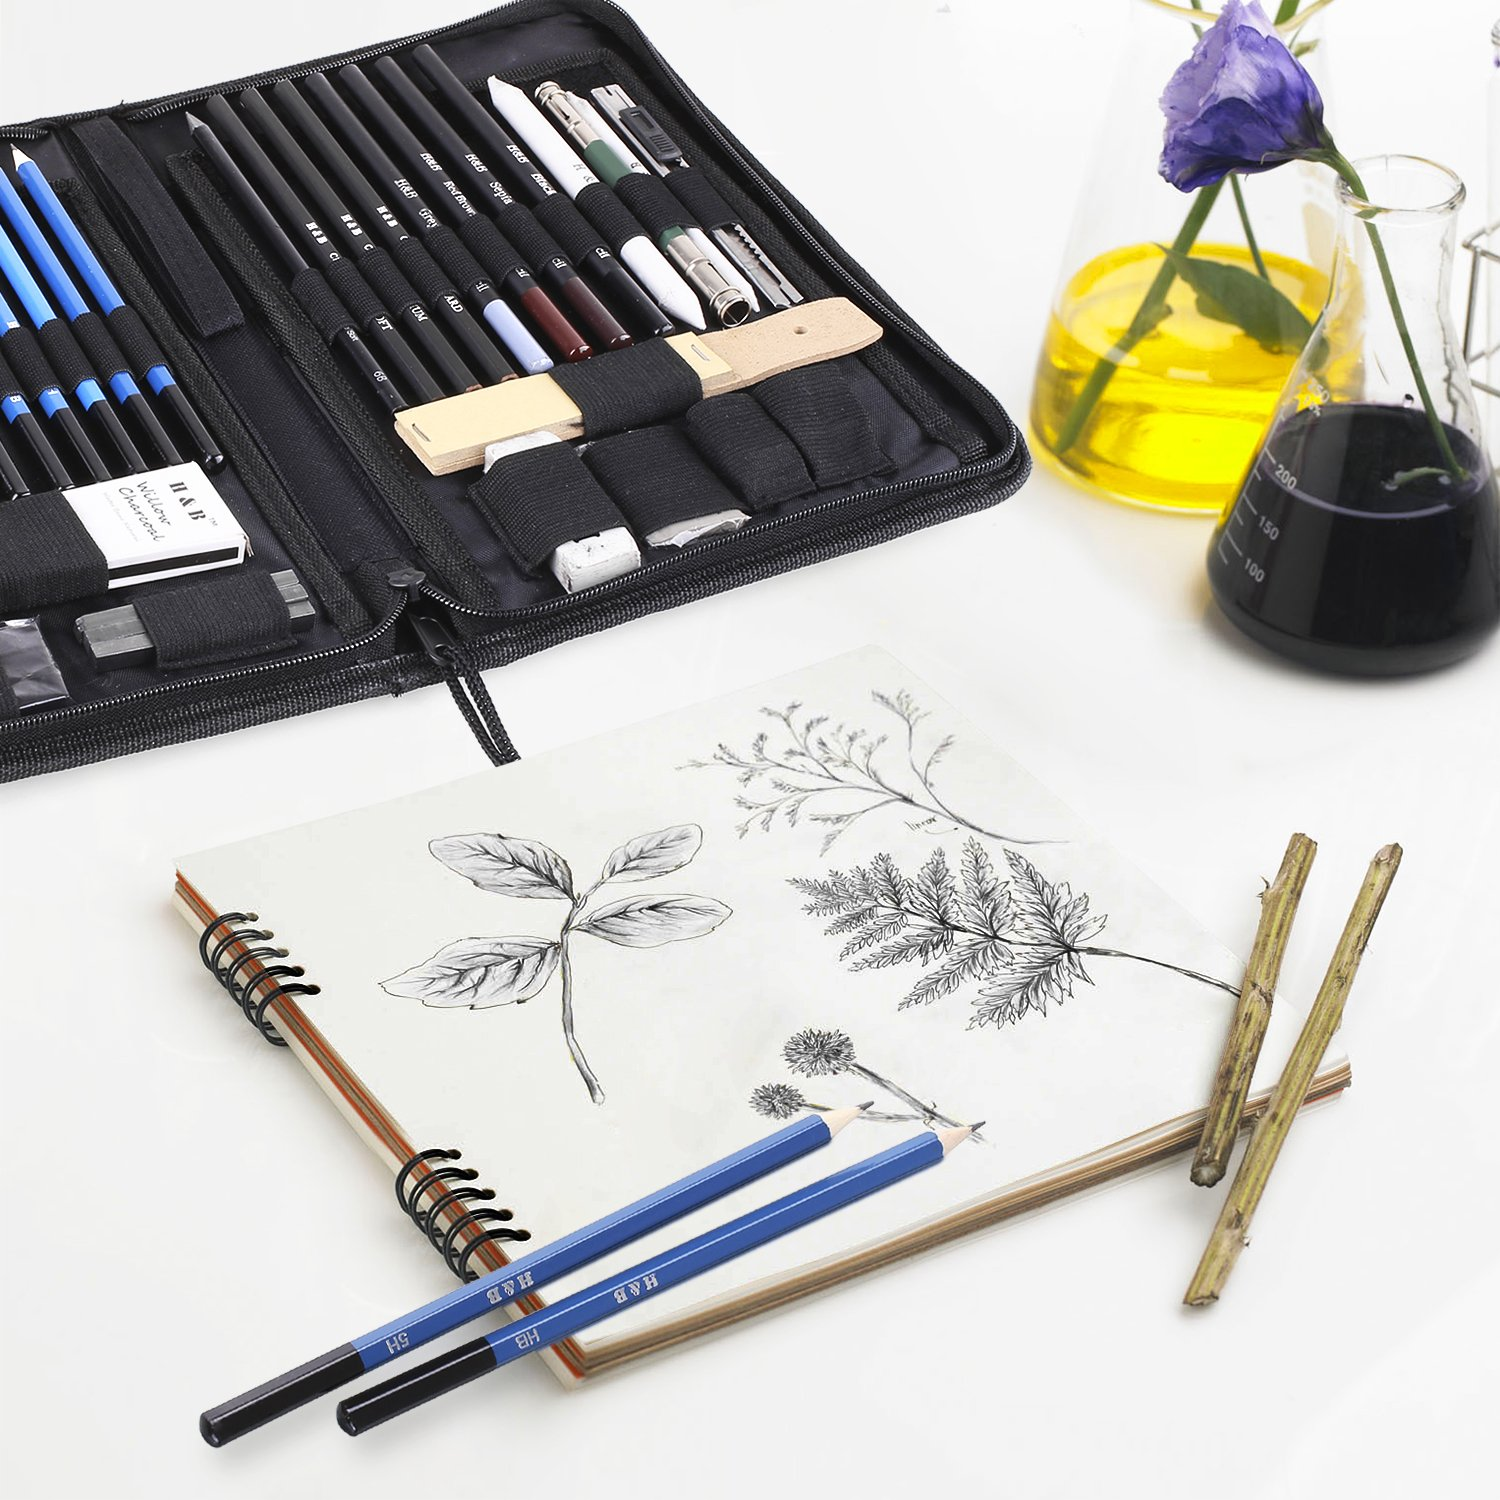 FEMOR Sketching/Drawing Pencils Set, 40 Pieces Sketching Art Kit with Sketch/Graphite Pencils, Erasers, Kit Bag, Ideal Gift for Kids and Painting Amateurs by femor (Image #1)